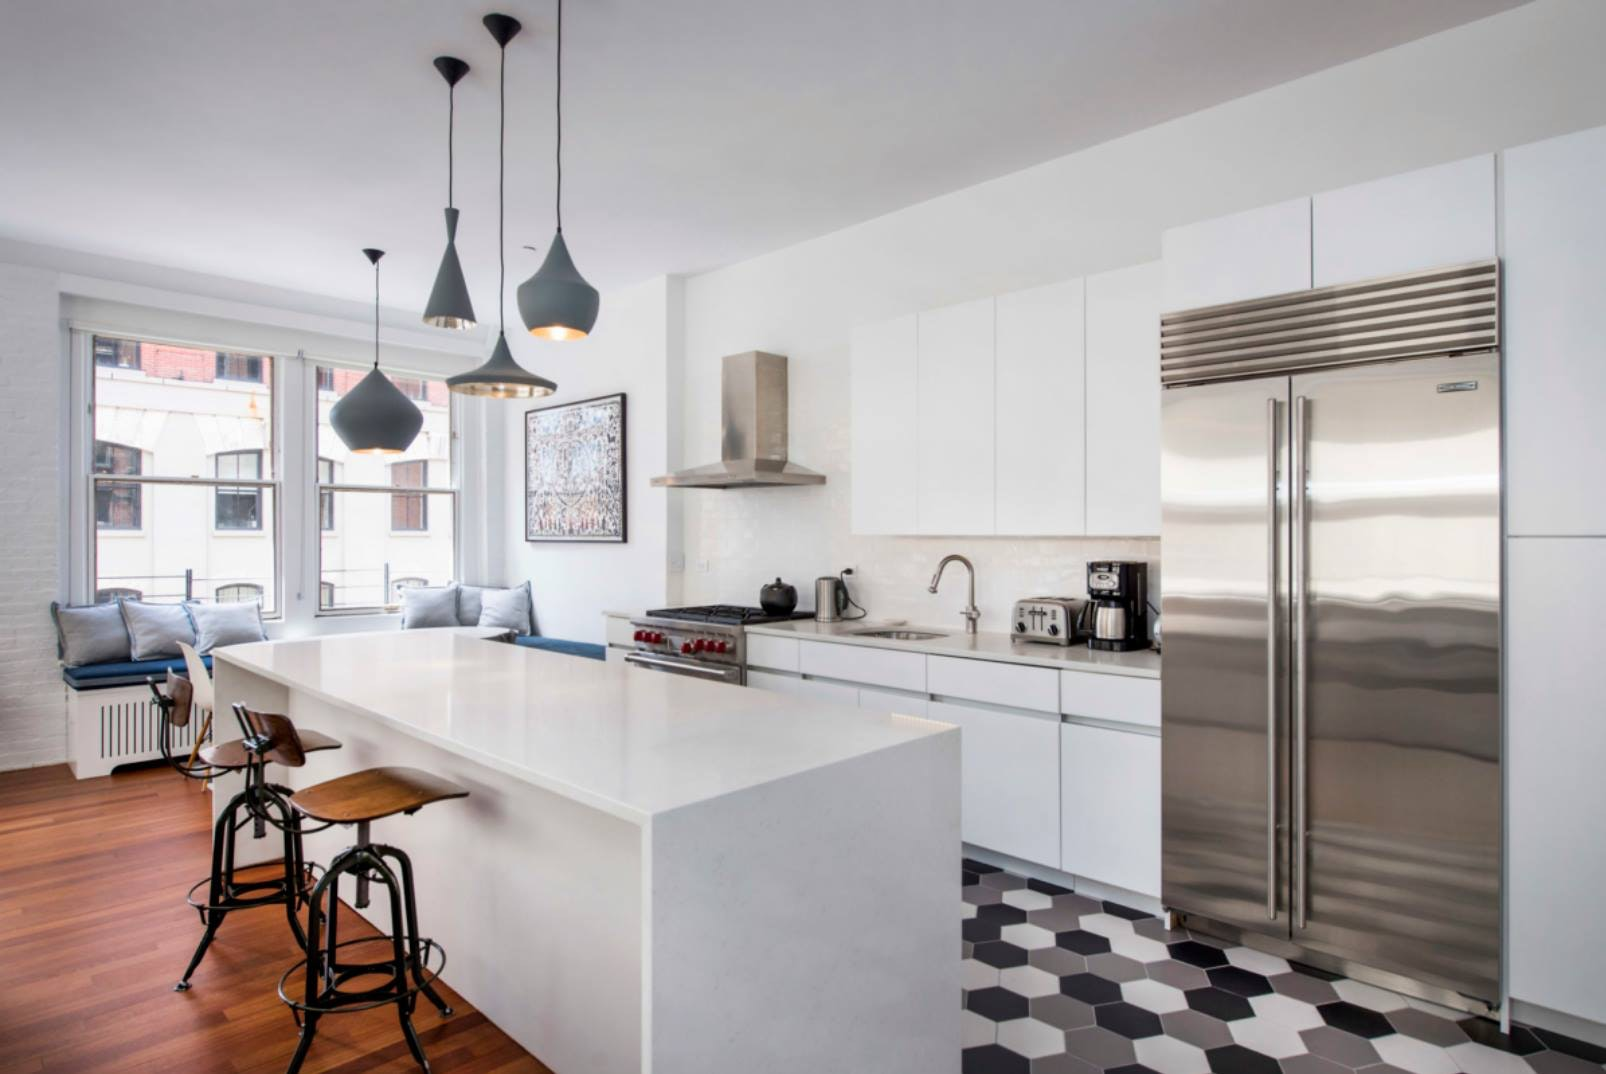 Myhome Design Remodeling Suggests Open Kitchen Floor Plan